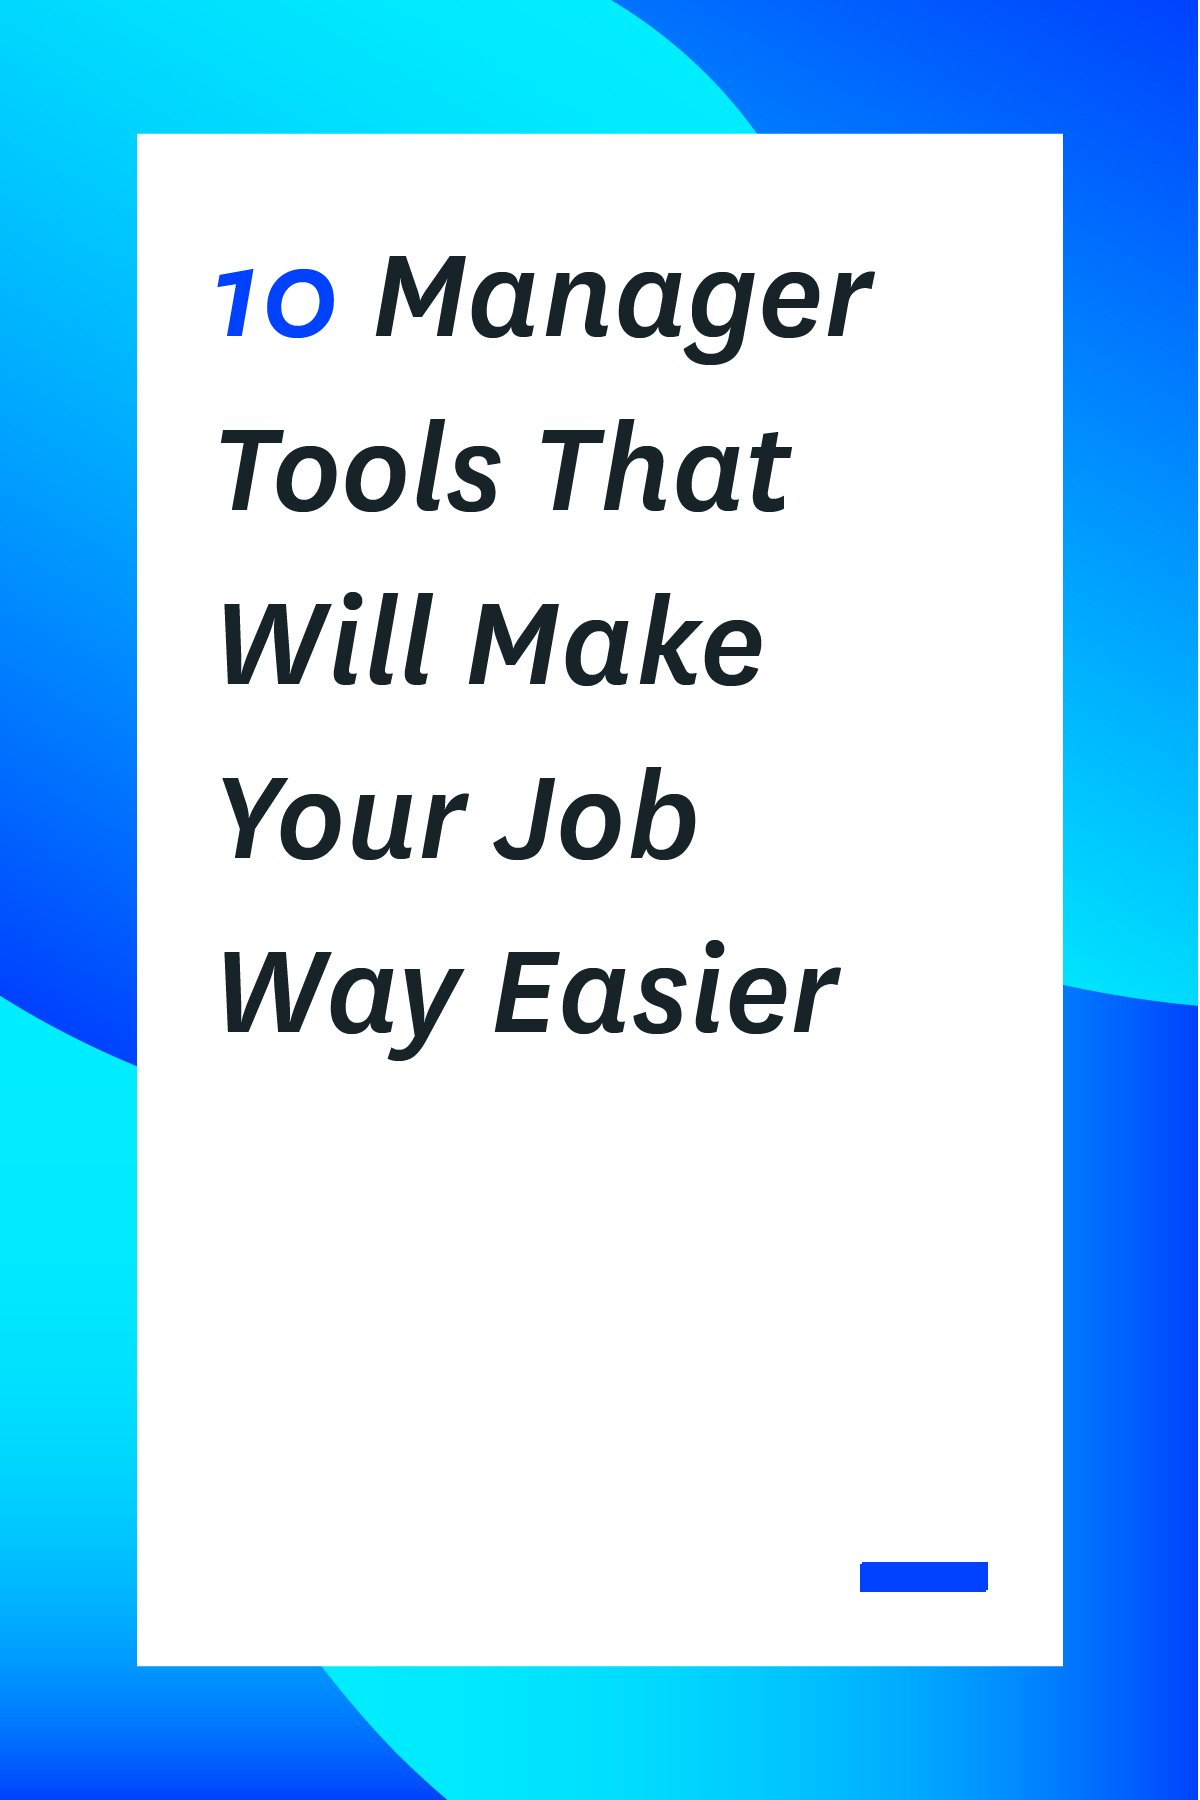 As a manger, you have a lot on your plate. You're hiring, training, coaching and coaxing your employees and managing the workflow in the office. Stay on top of everything with the right set of manager tools. Here are 10 tools that will make your job way easier. #manager #managertips